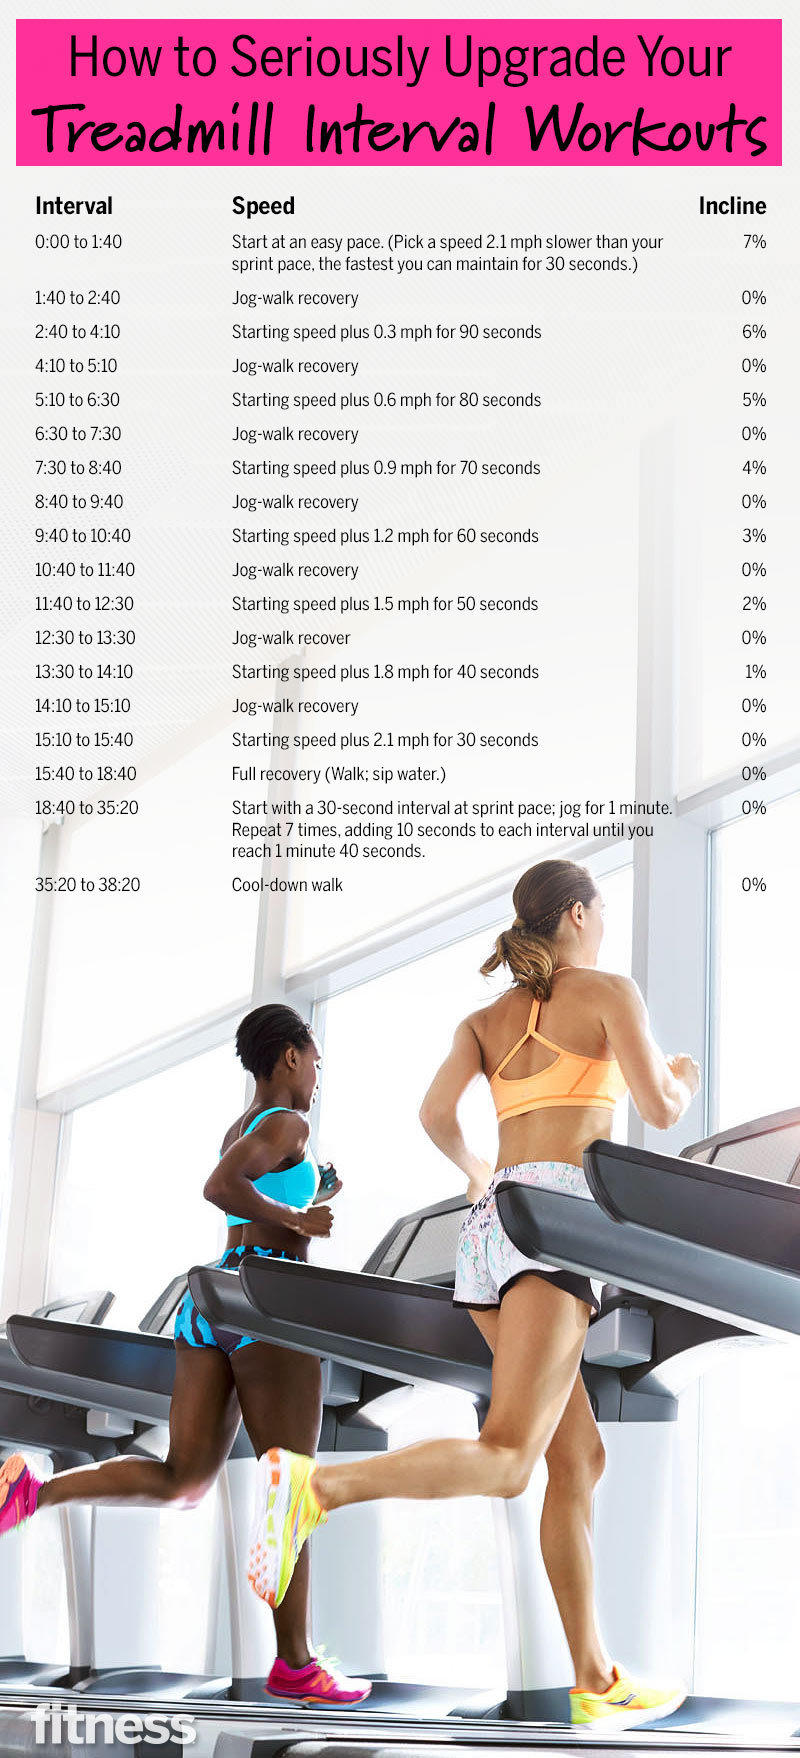 How to Seriously Upgrade Your Treadmill Interval Workouts